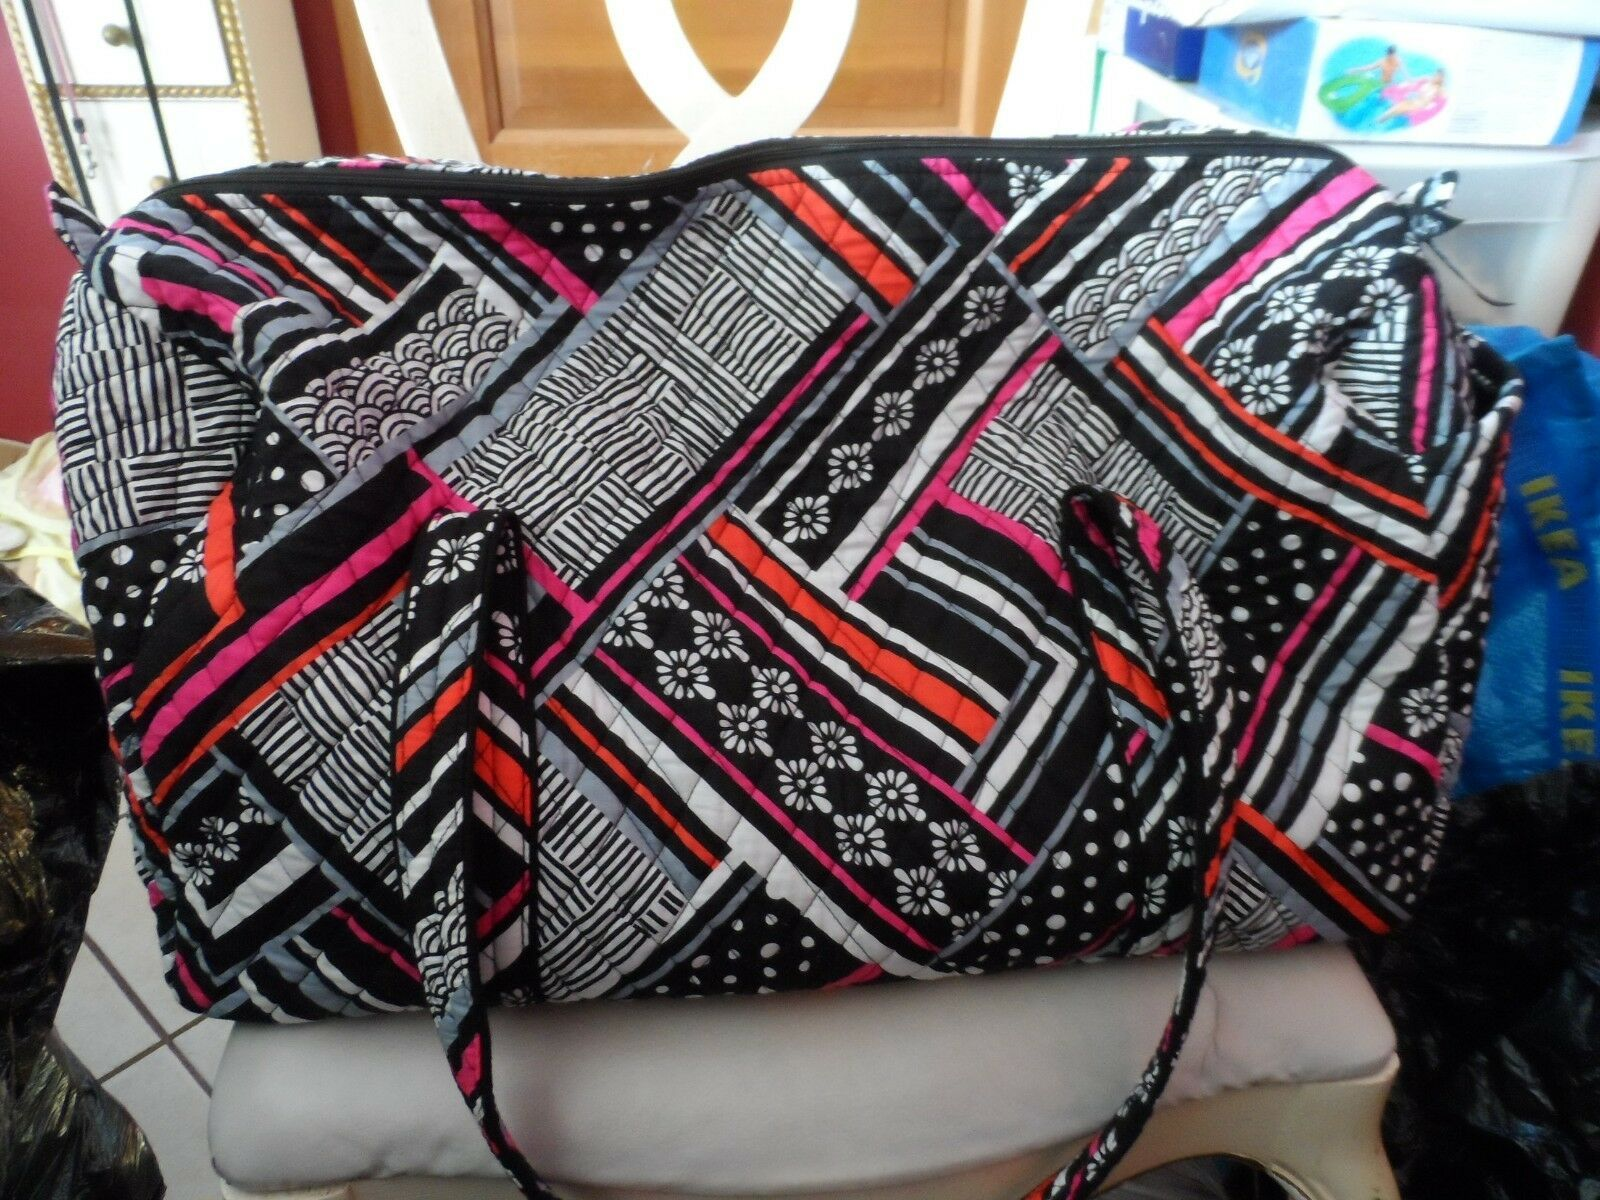 c850fa205 Vera Bradley large duffel in a Northern and 50 similar items. 57